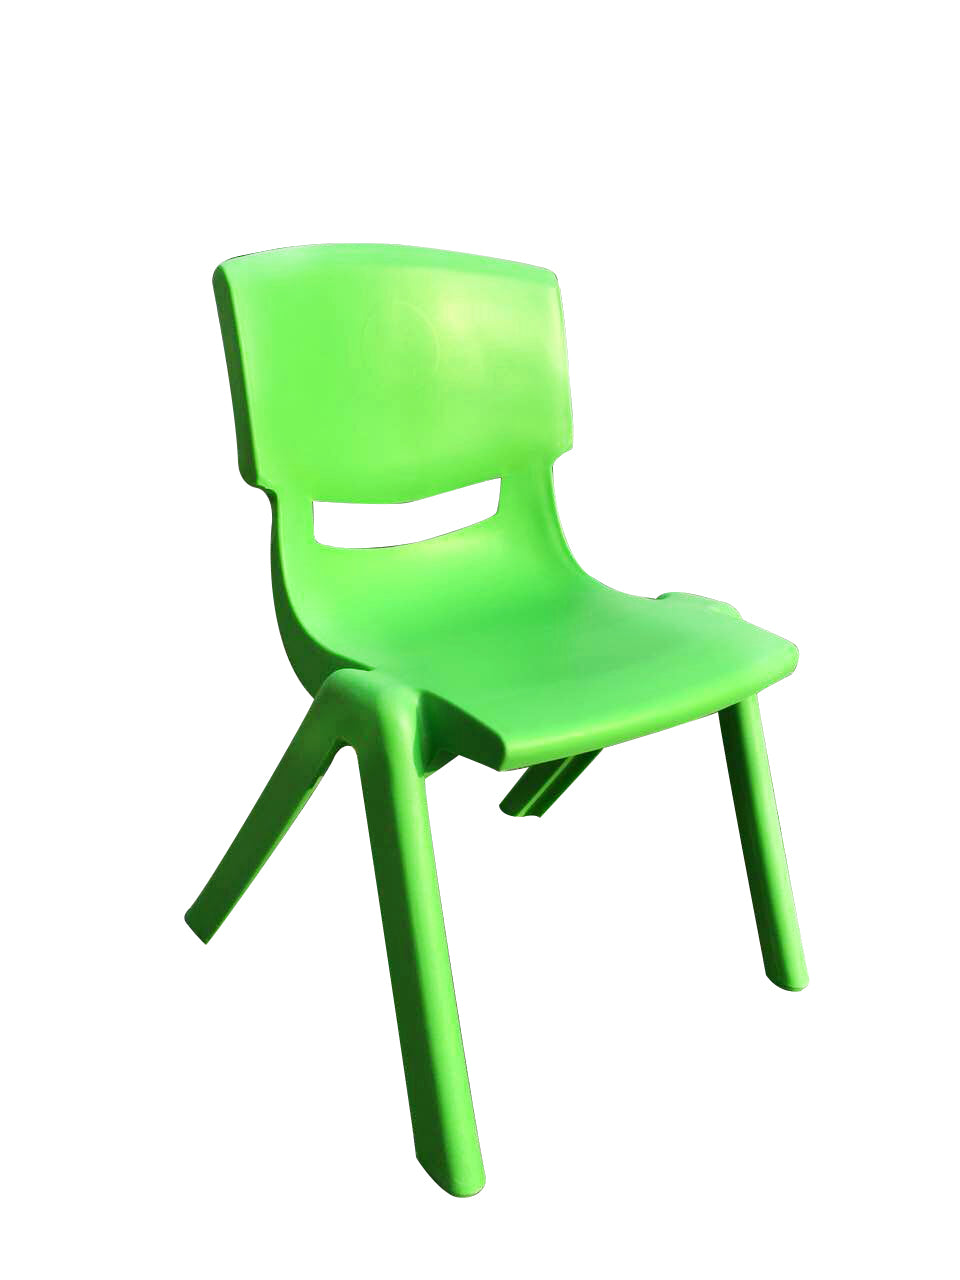 SET OF 6 GREEN CHILDRENS CHAIRS FOR CHILDRENS TABLE HOLDS UP TO 100KG